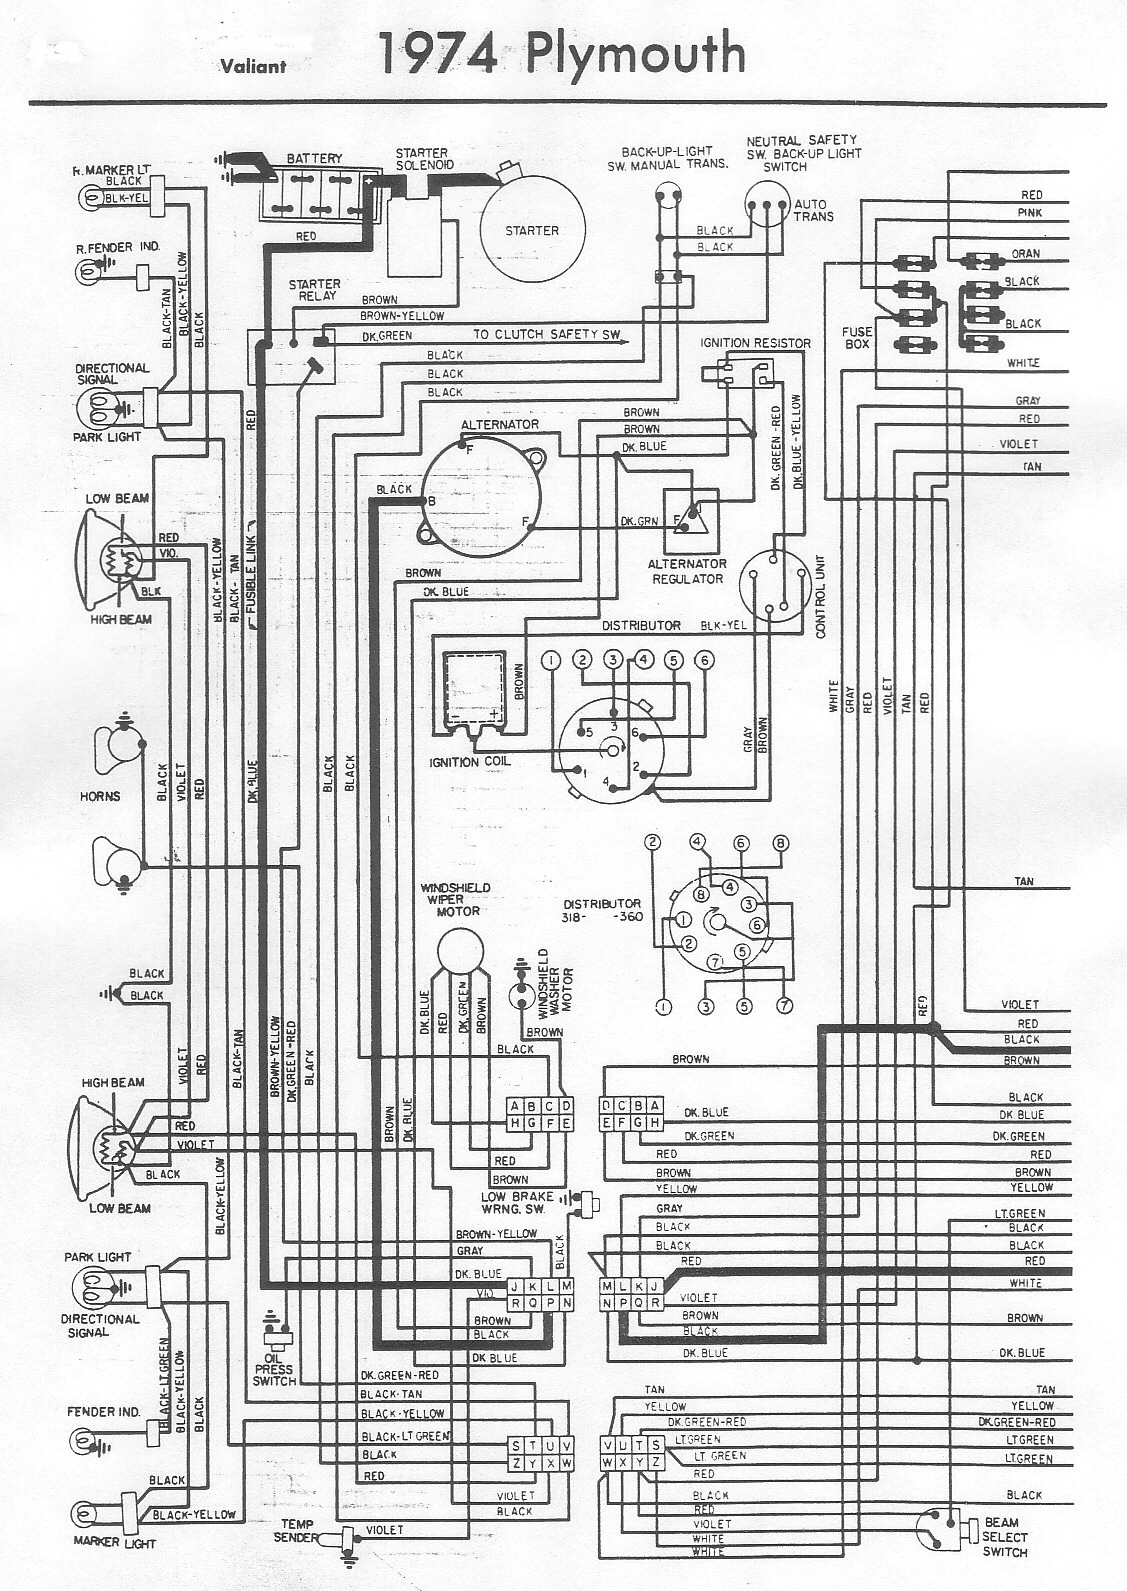 Super 67 Charger 440 Wiring Diagram Basic Electronics Wiring Diagram Wiring 101 Orsalhahutechinfo